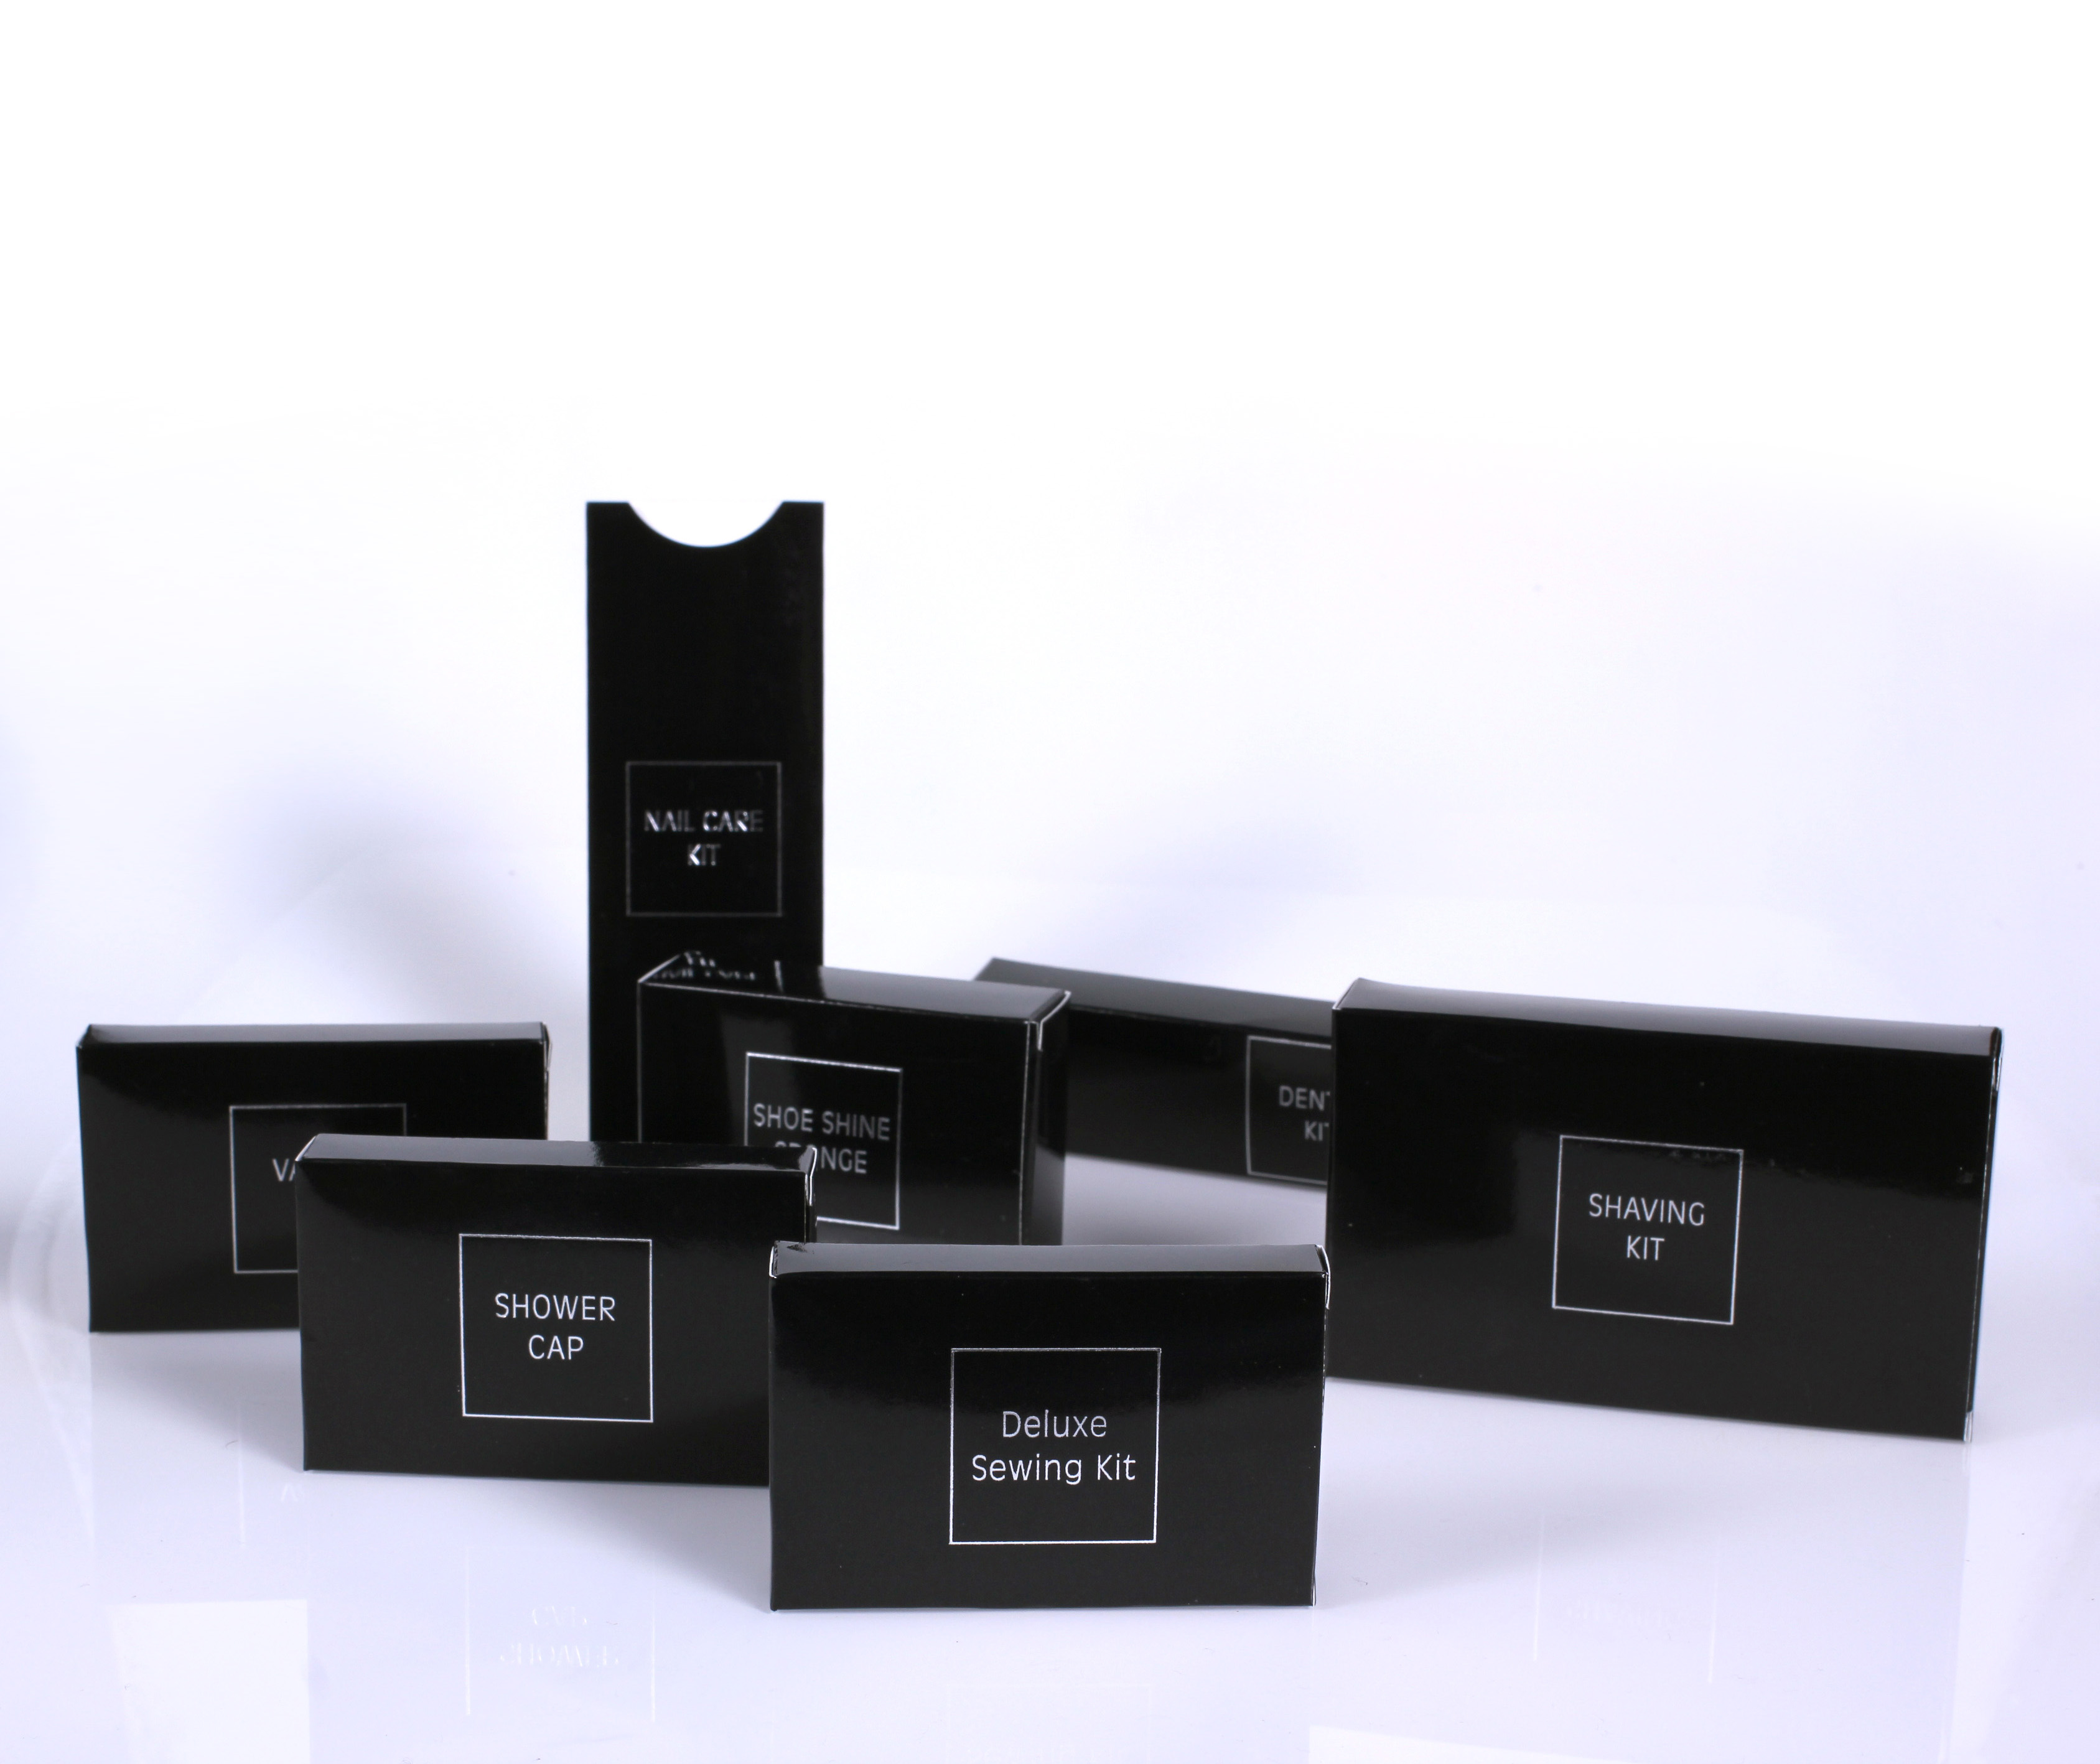 Black and Silver Carton Hotel Amenities